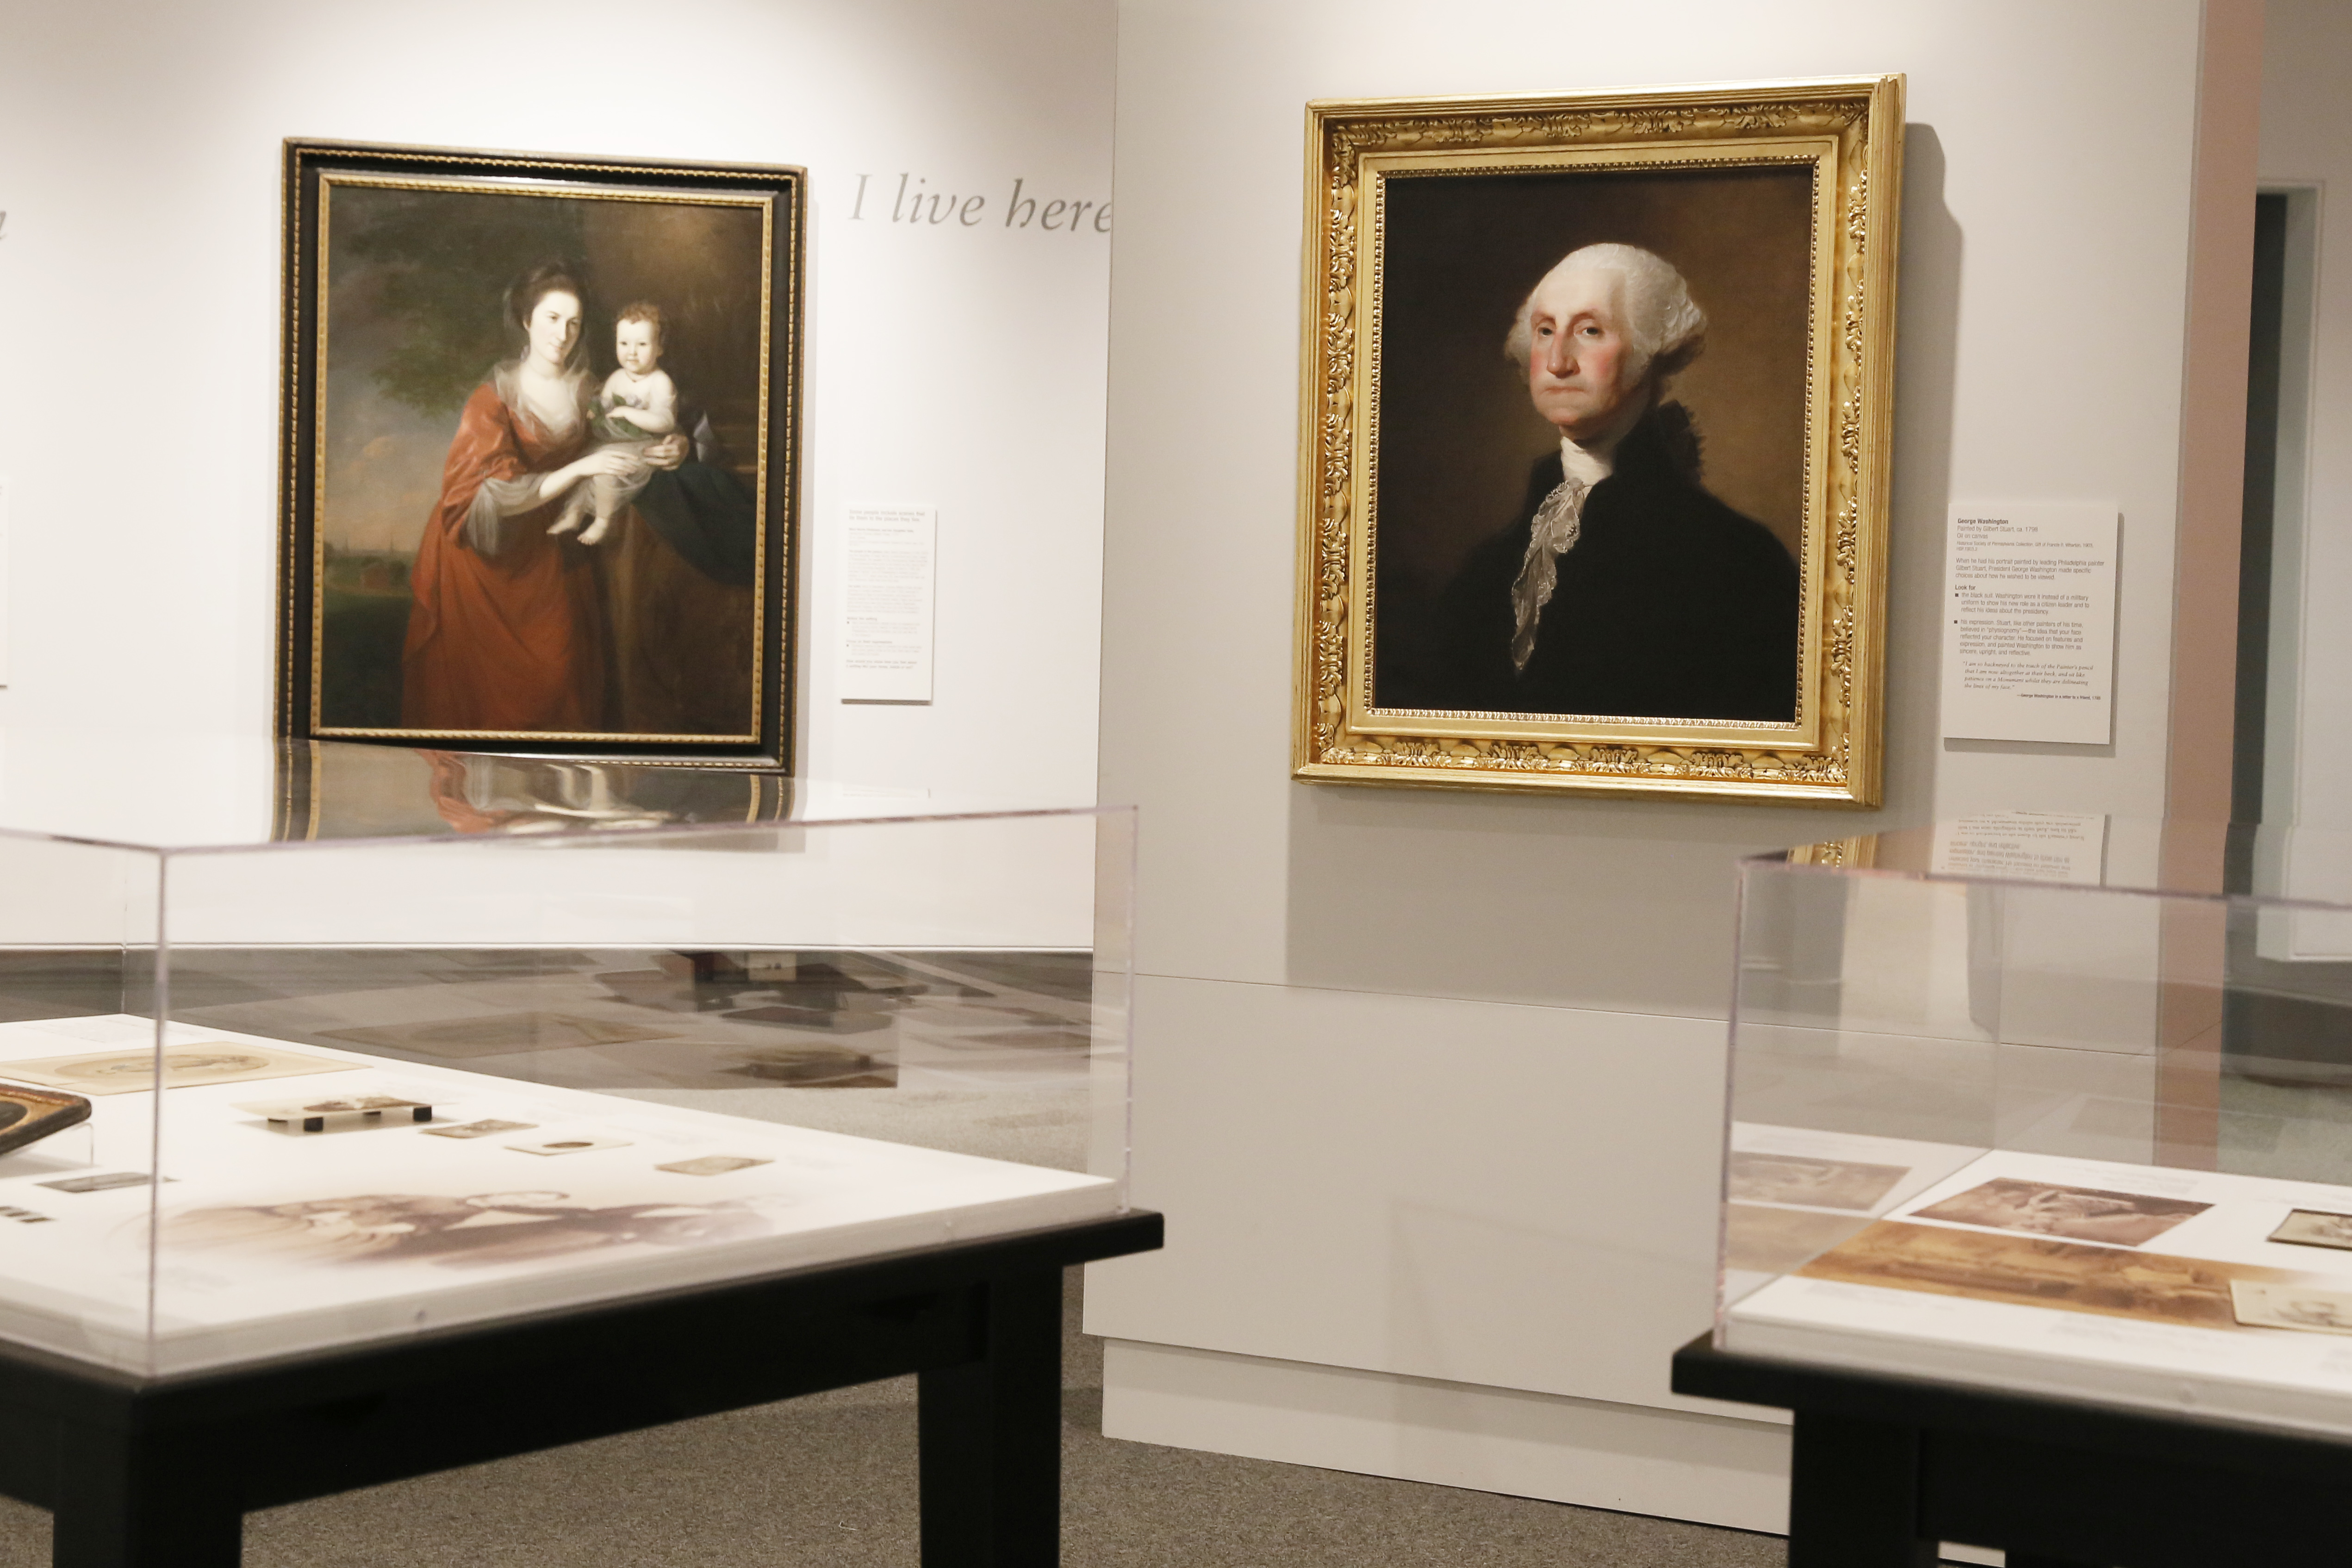 Also on display at the Philadelphia History Museum: A 1798 painting of George Washington by Gilbert Stuart.